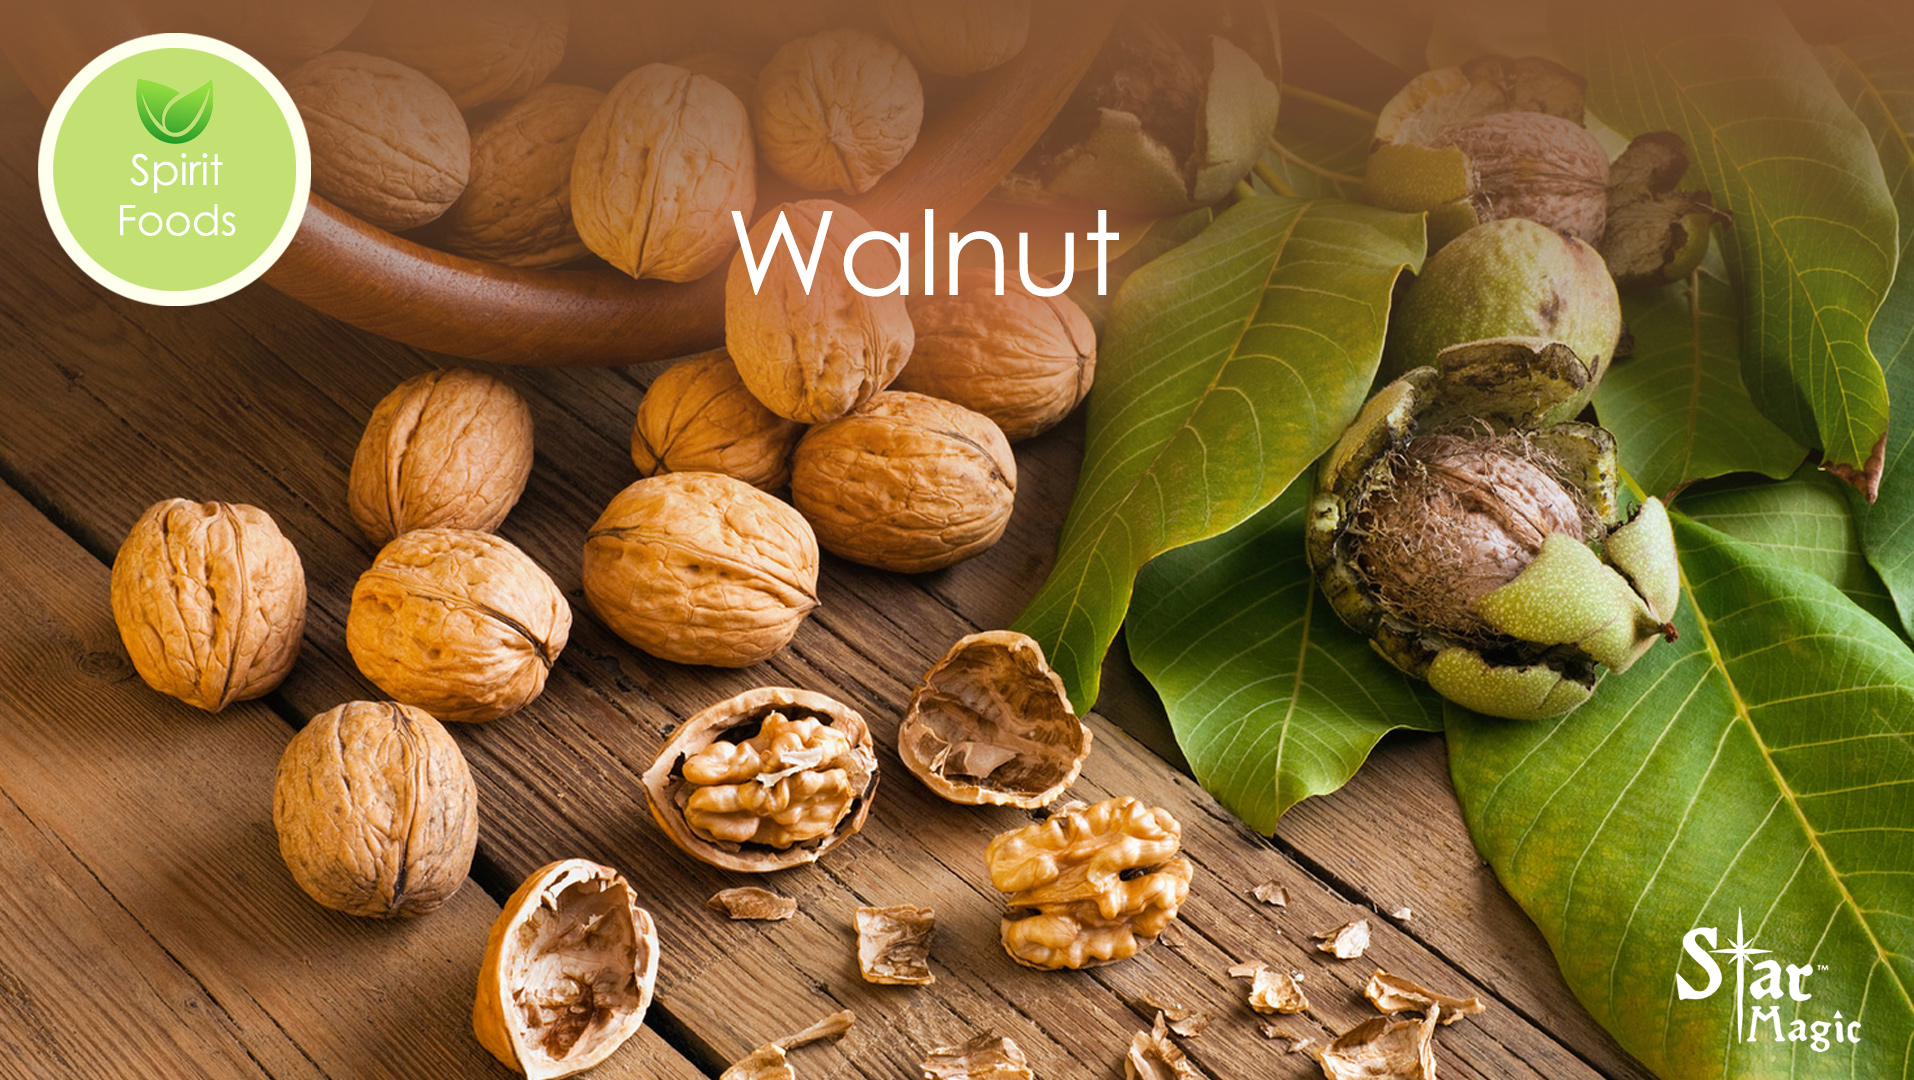 Spirit Food – Walnut